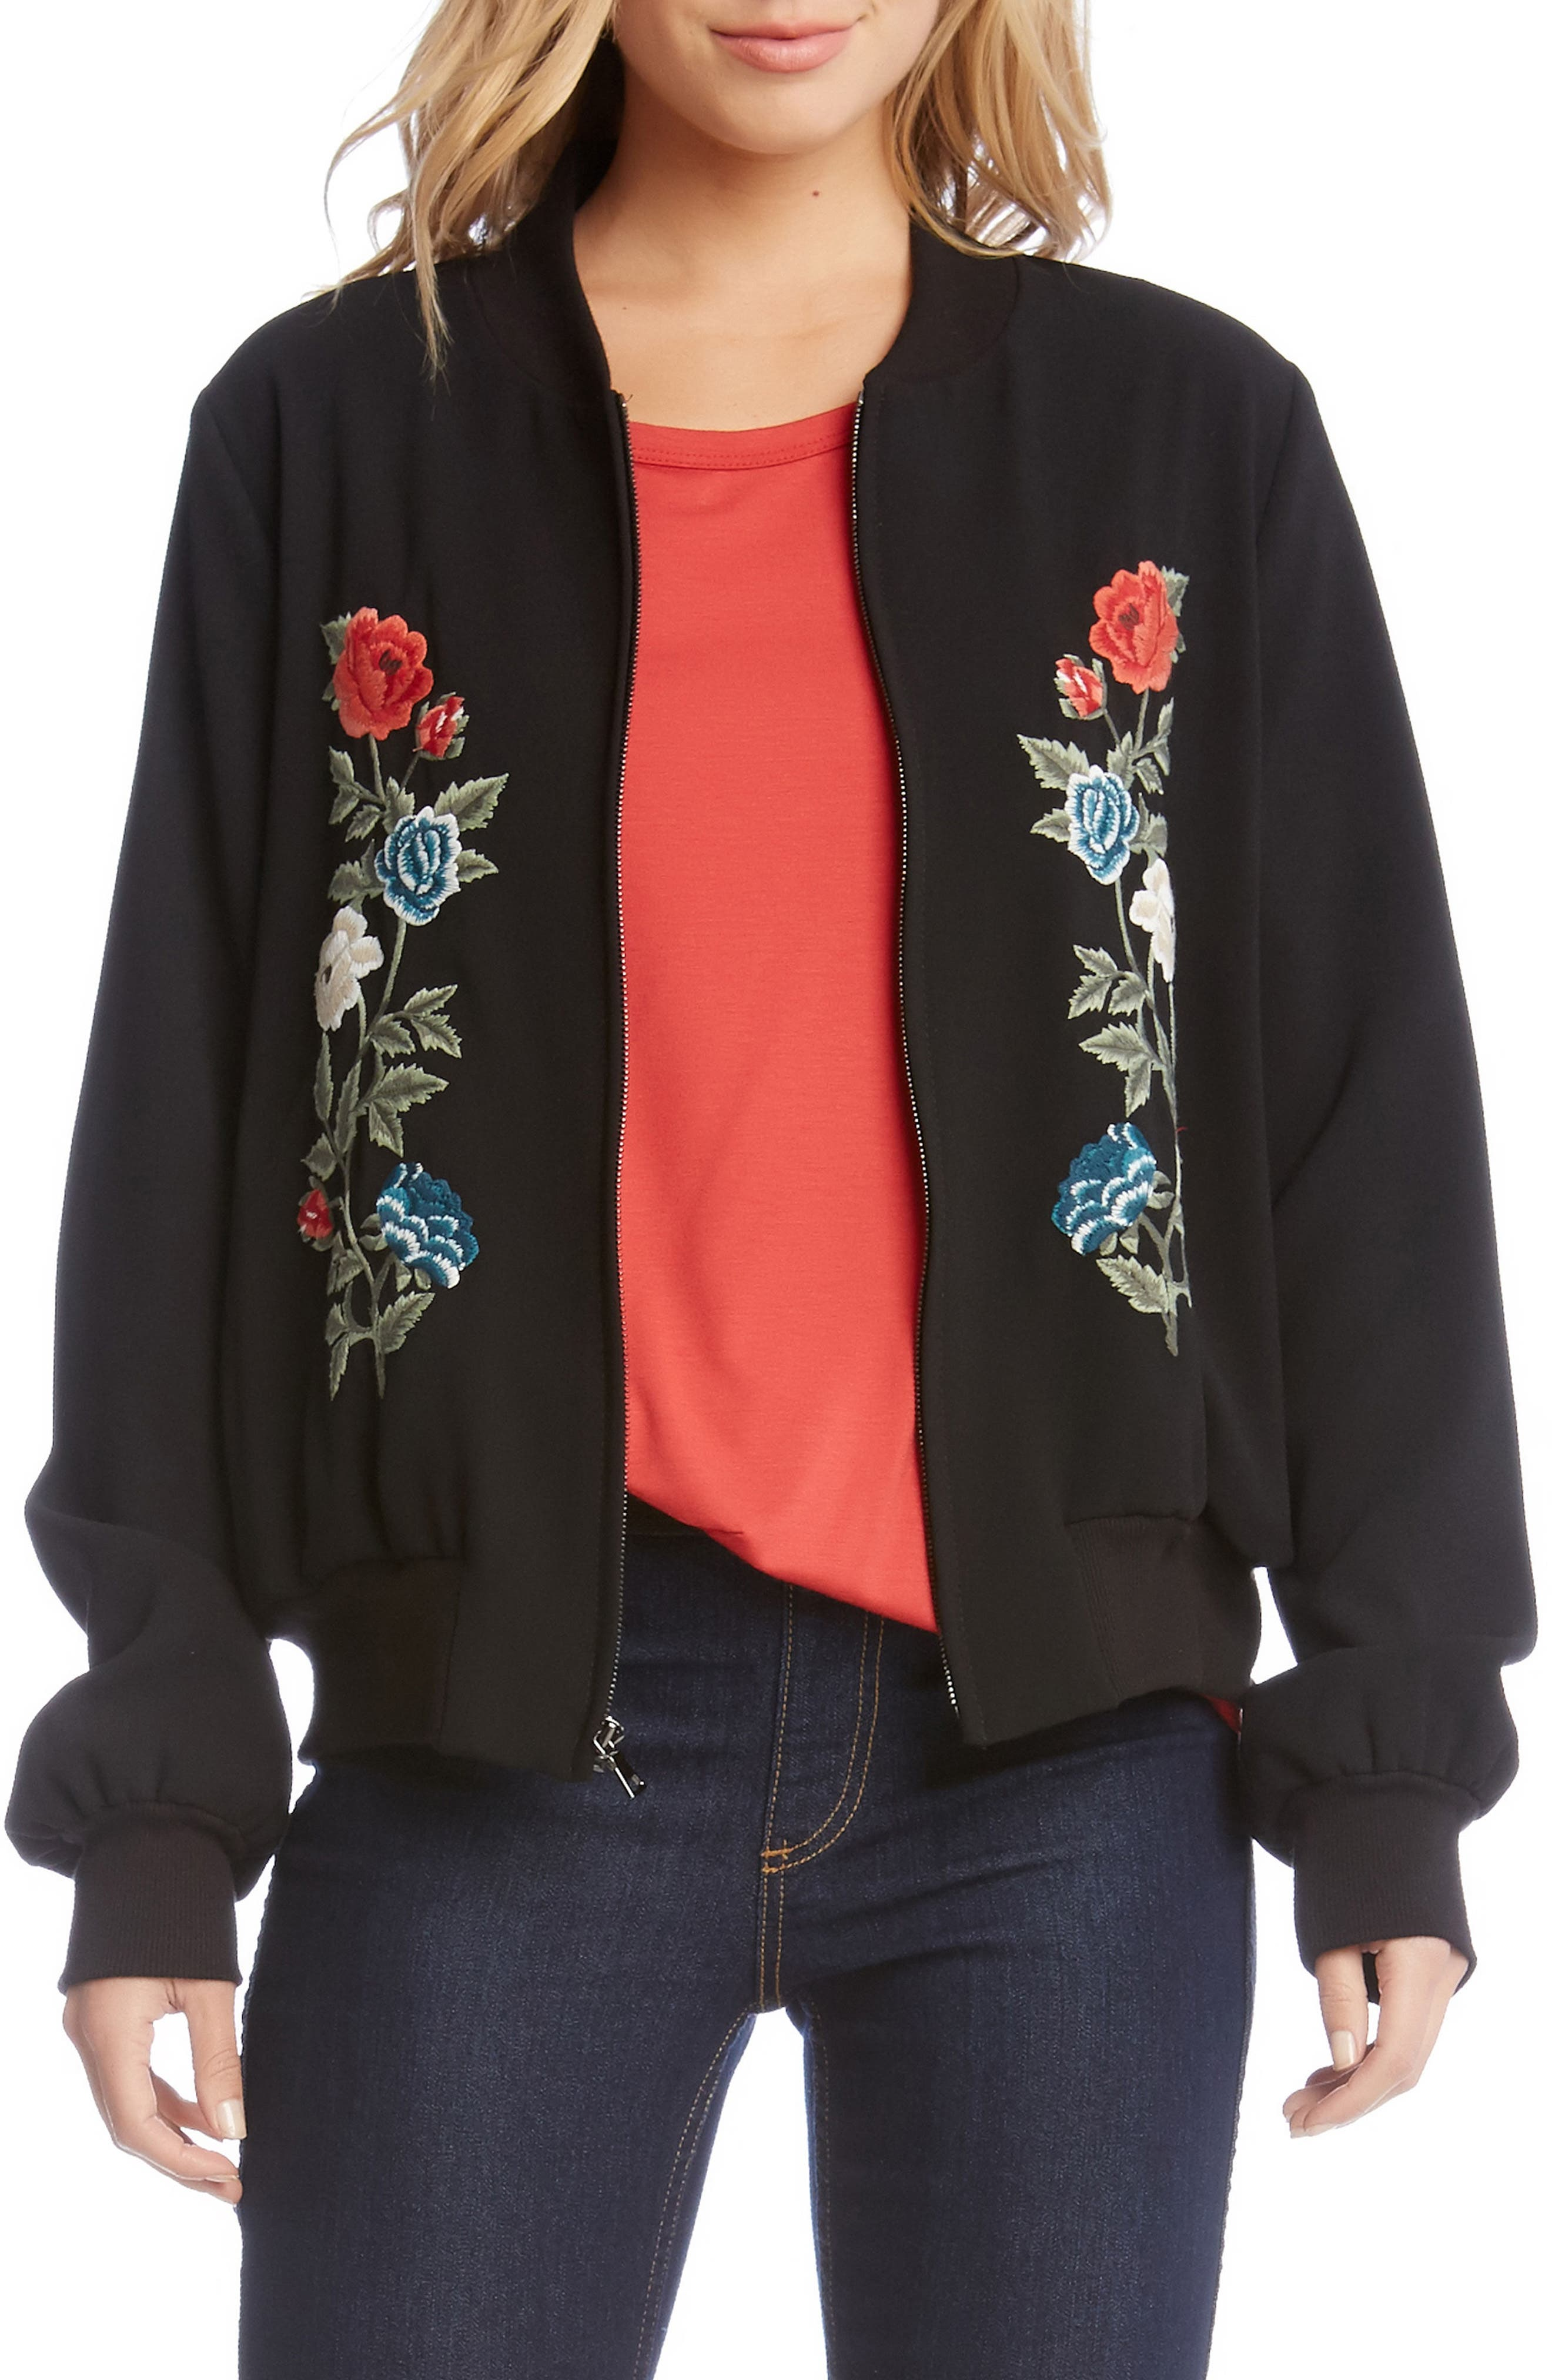 Embroidered Bomber Jacket,                             Main thumbnail 1, color,                             001